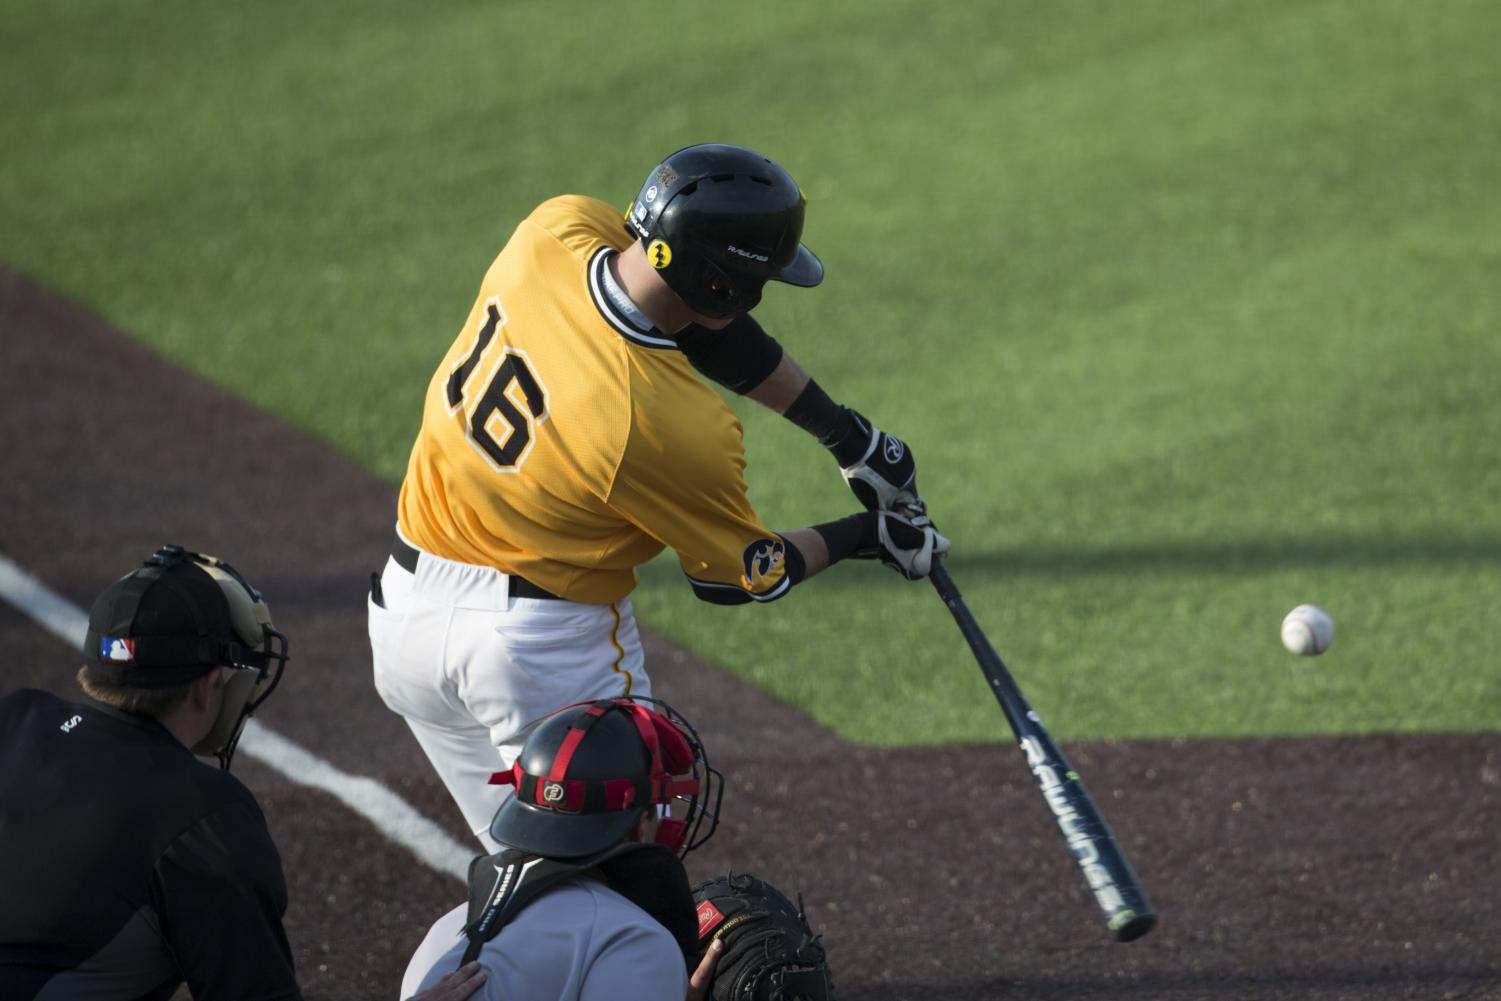 Iowa shortstop Tanner Wetrich swings at a pitch against Northern Illinois on April 16, 2019. The Hawkeyes defeated the Huskies, 8-6.